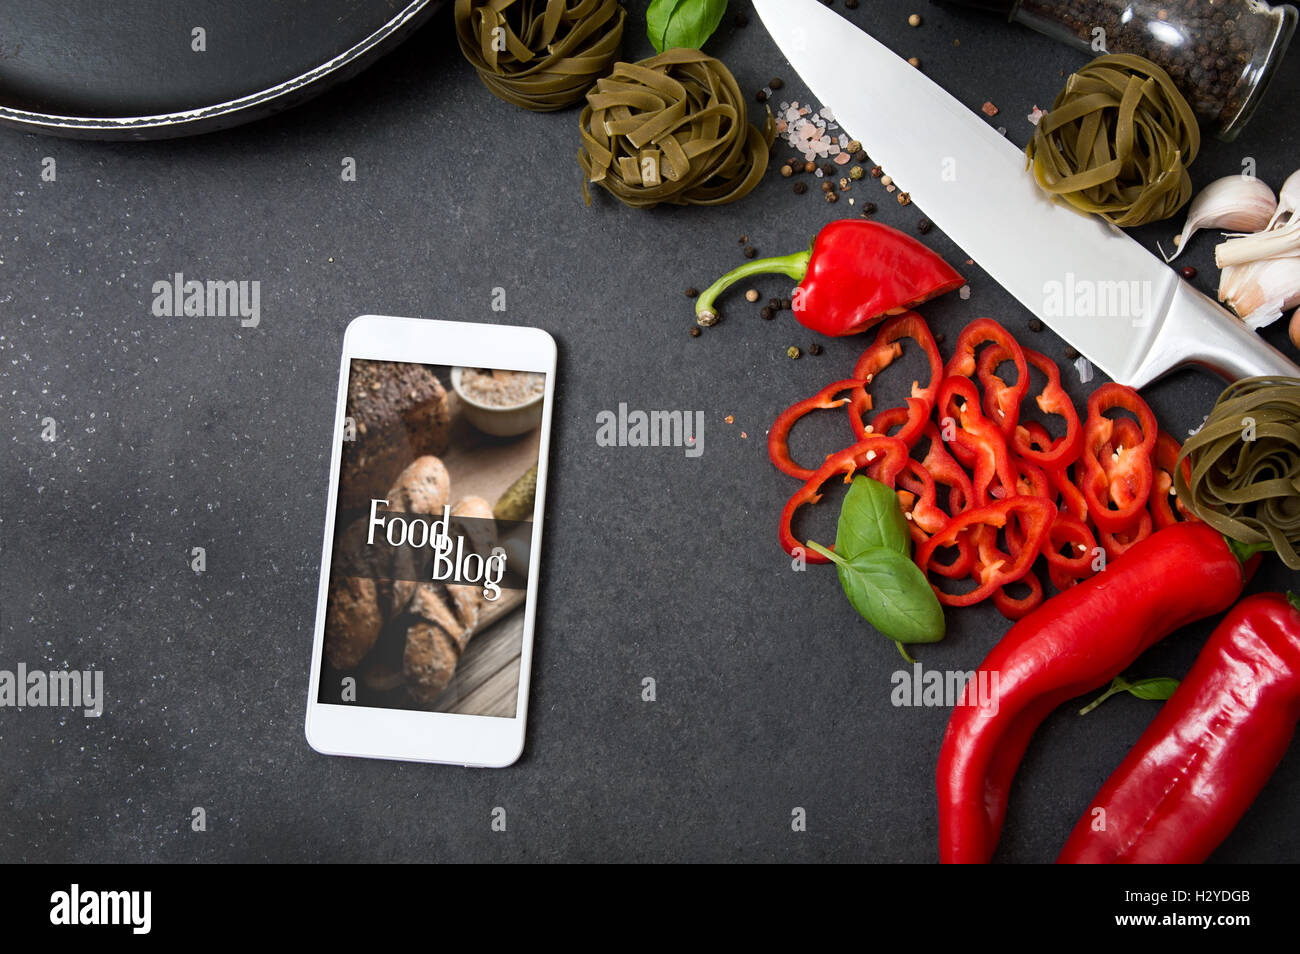 Smartphone with Food Blog application lying on stone countertop and surrounded by fresh herbs and hot spices Stock Photo